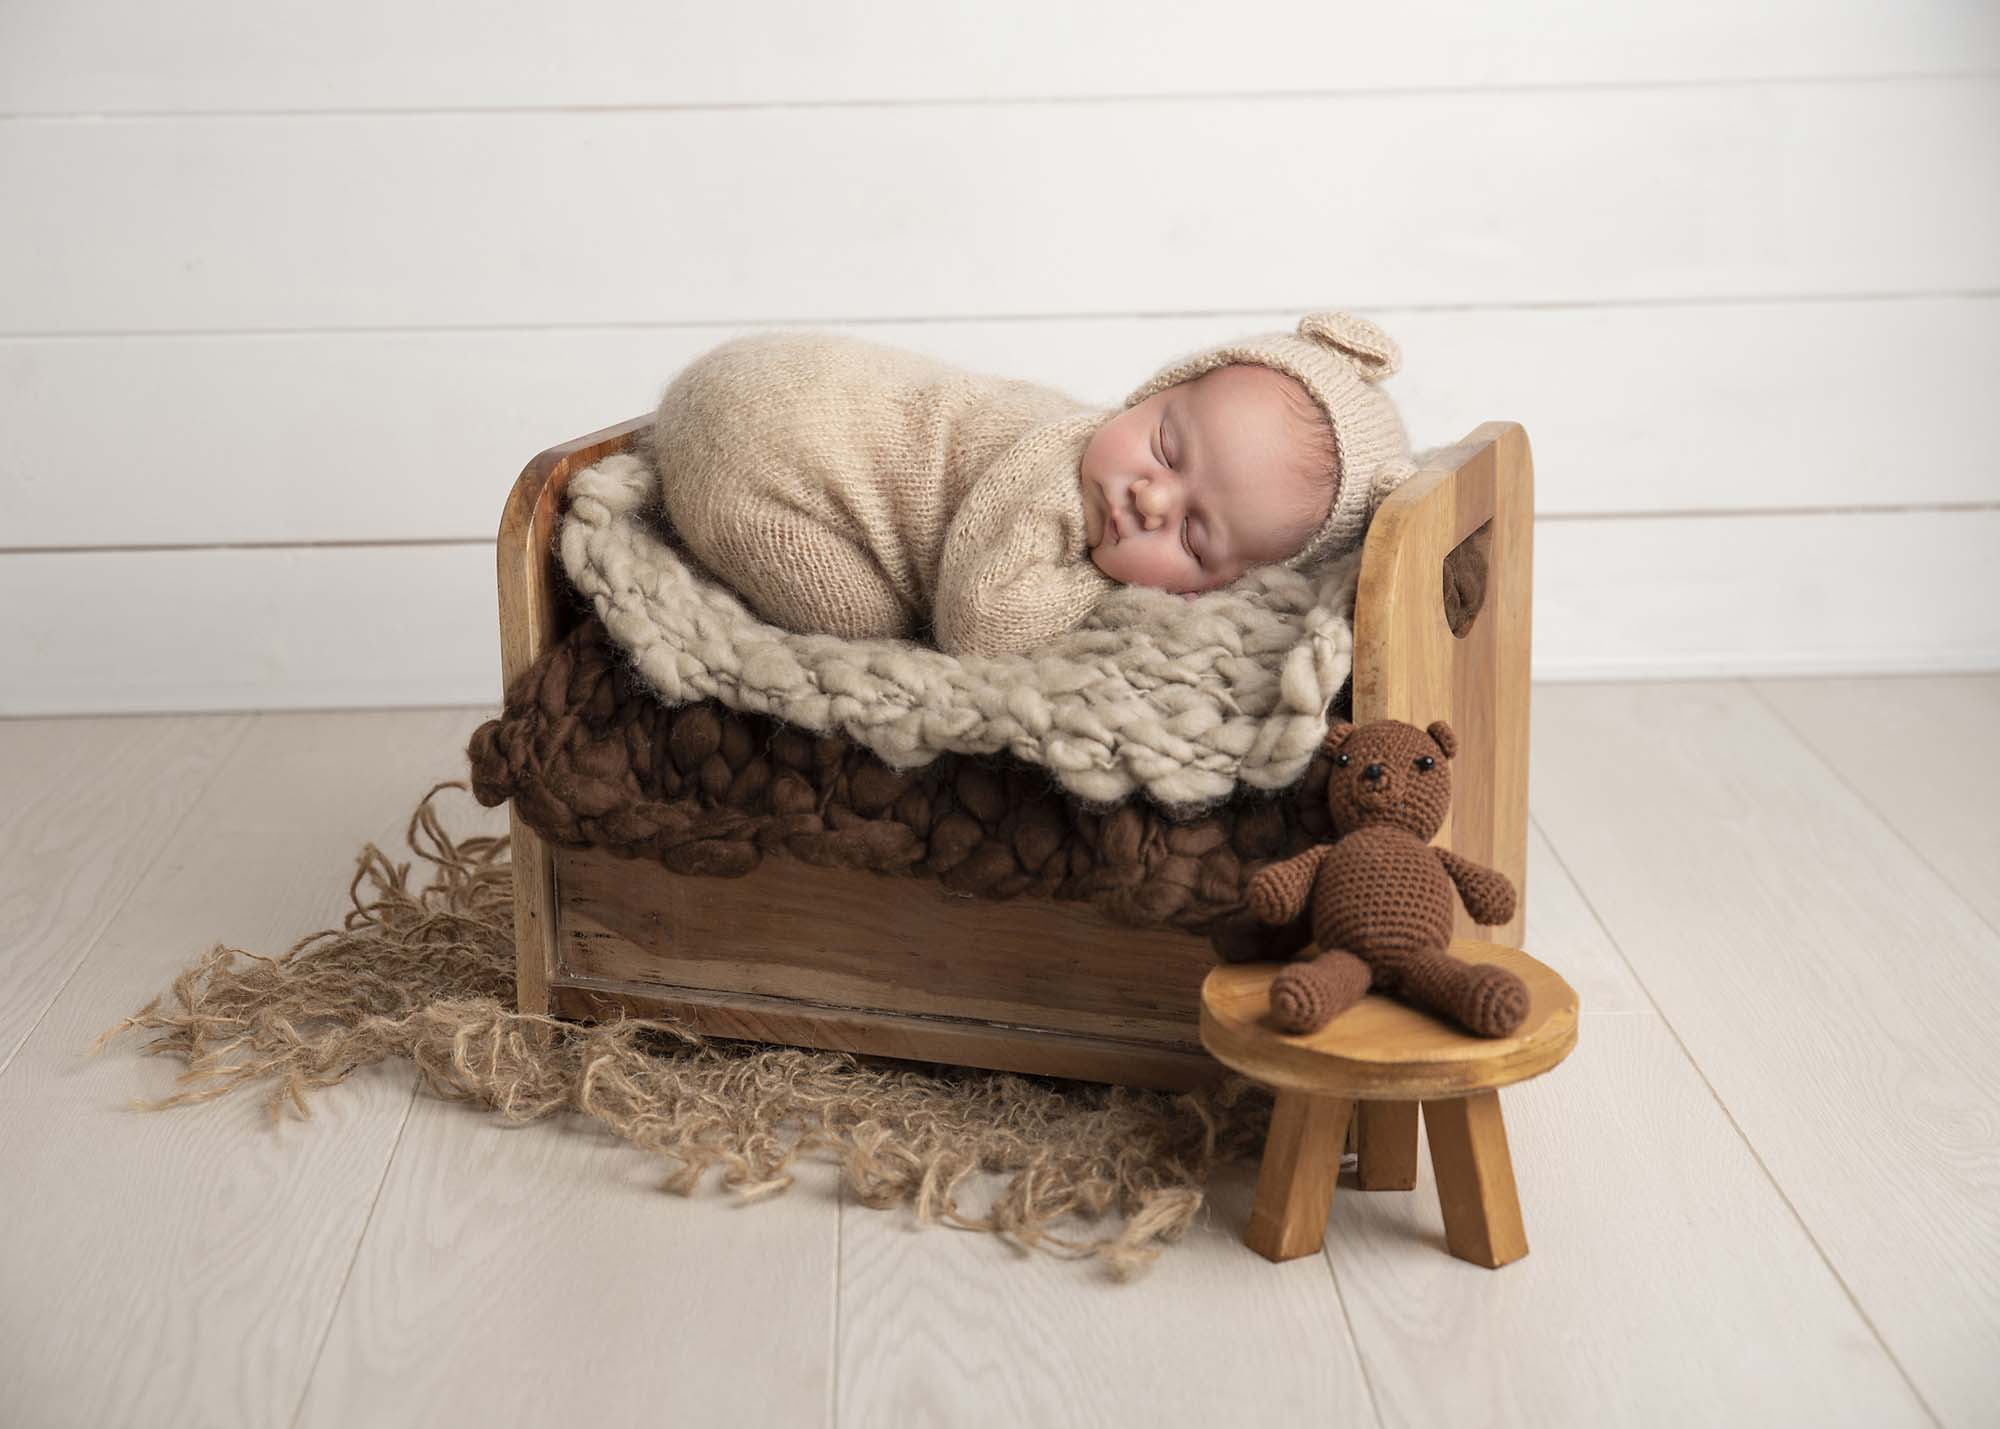 newborn boy on a little bed and teddy toy photographed by Newborn Photographer Cheshire